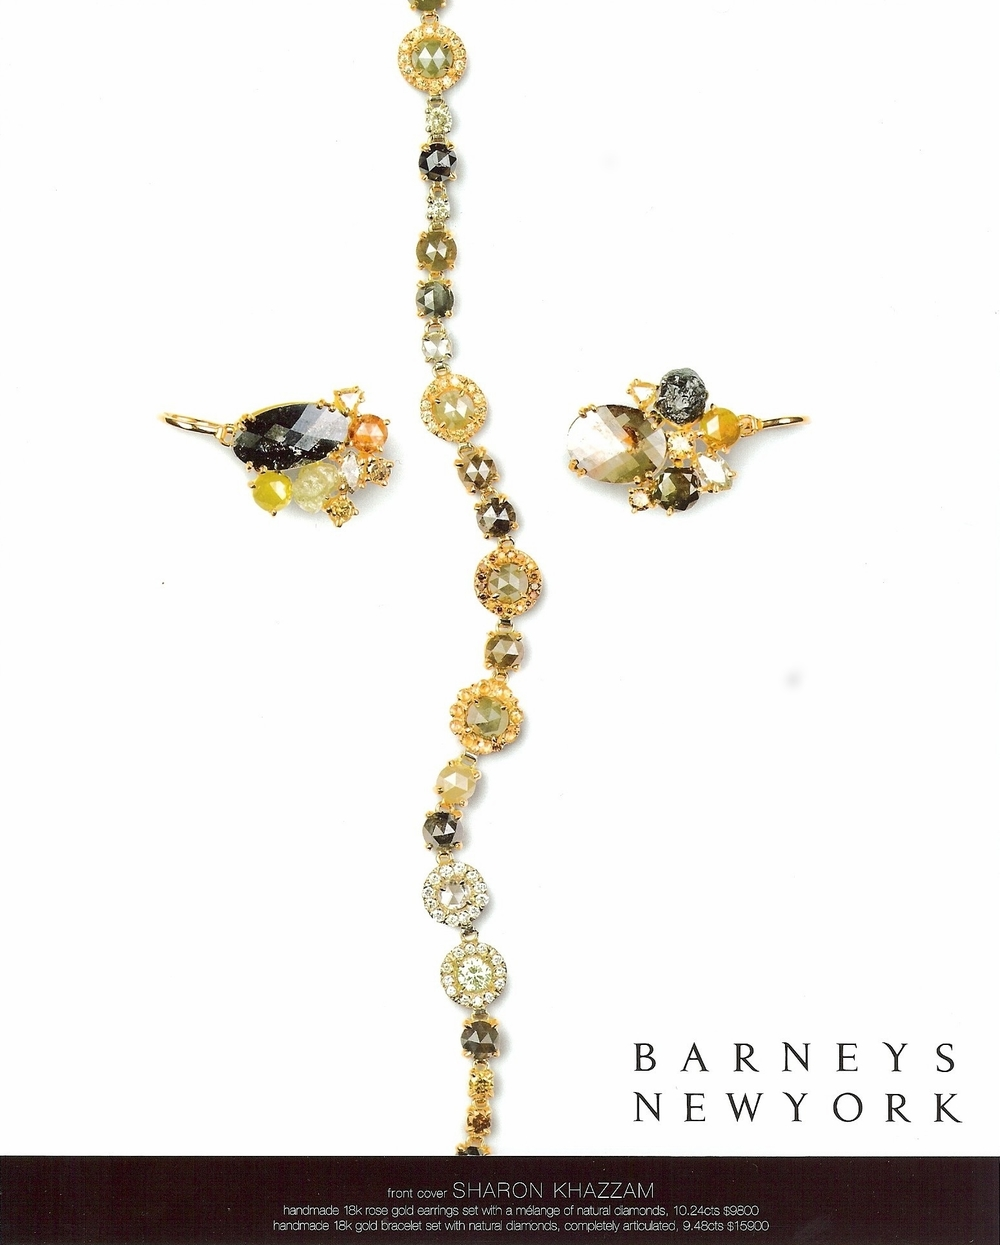 2008-Barneys Mailer- Diamond Bracelet and Earrings.jpg